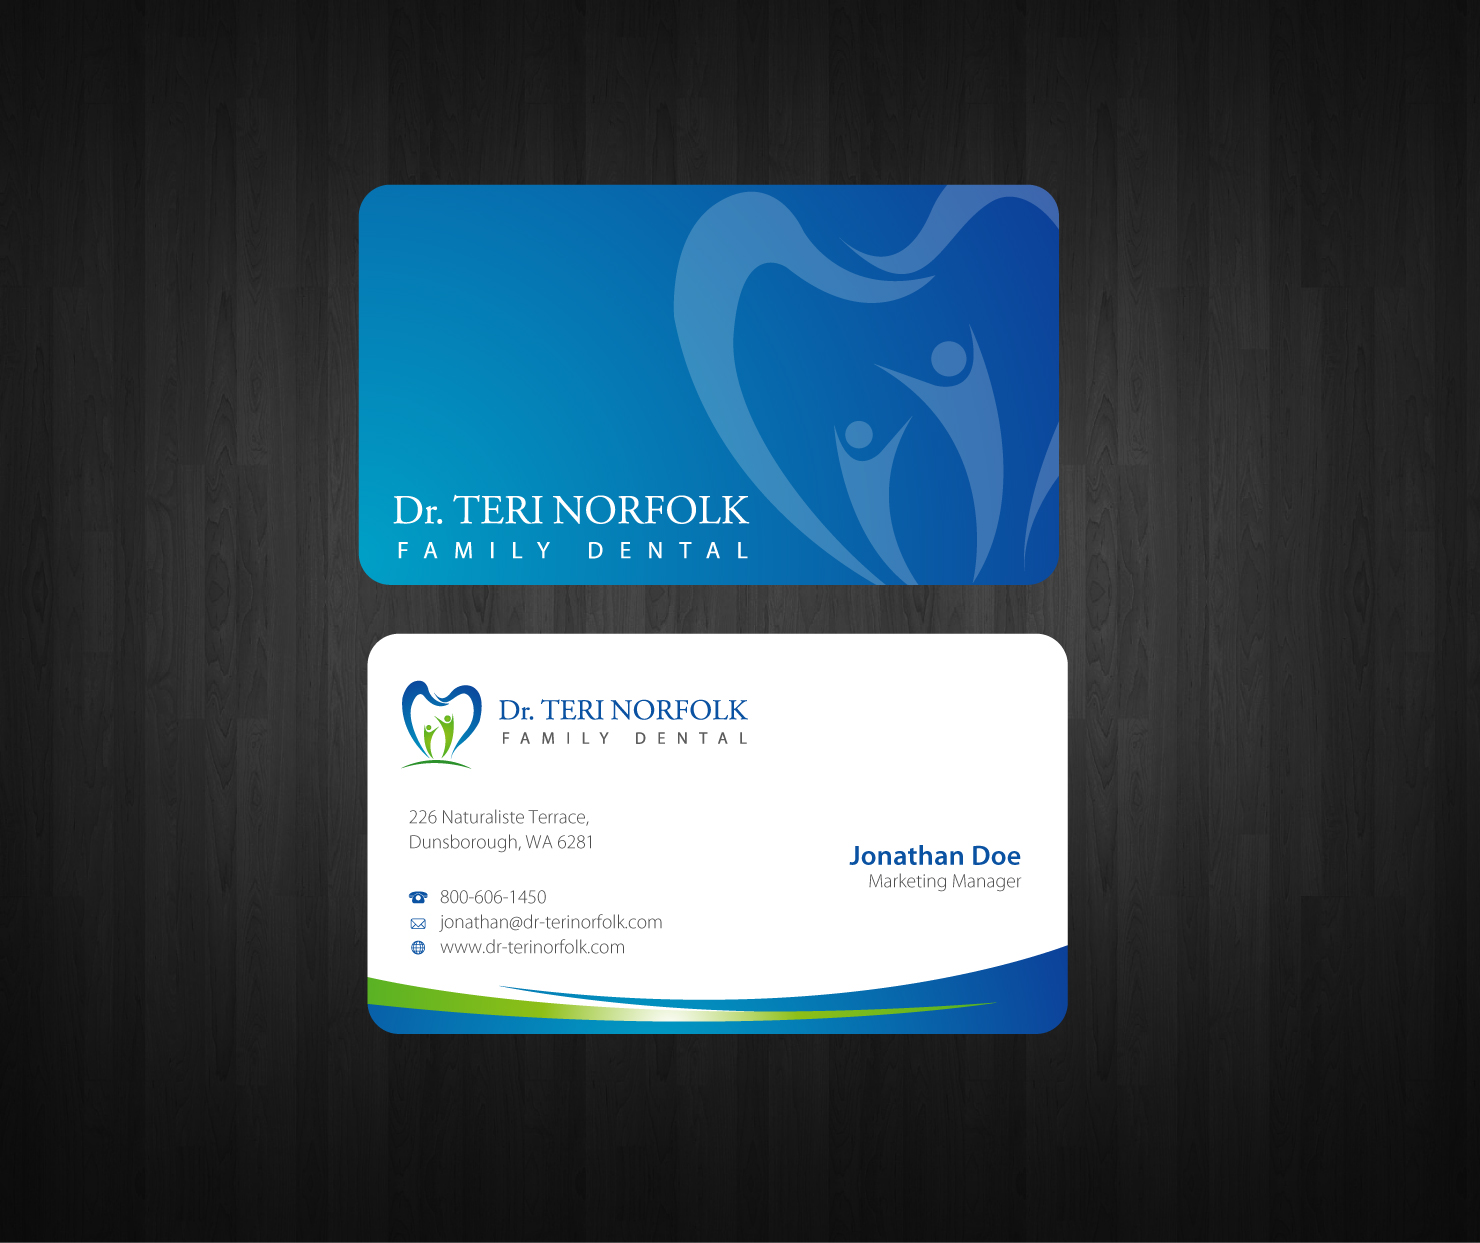 business card design ideas 2016 image source - Business Card Design Ideas